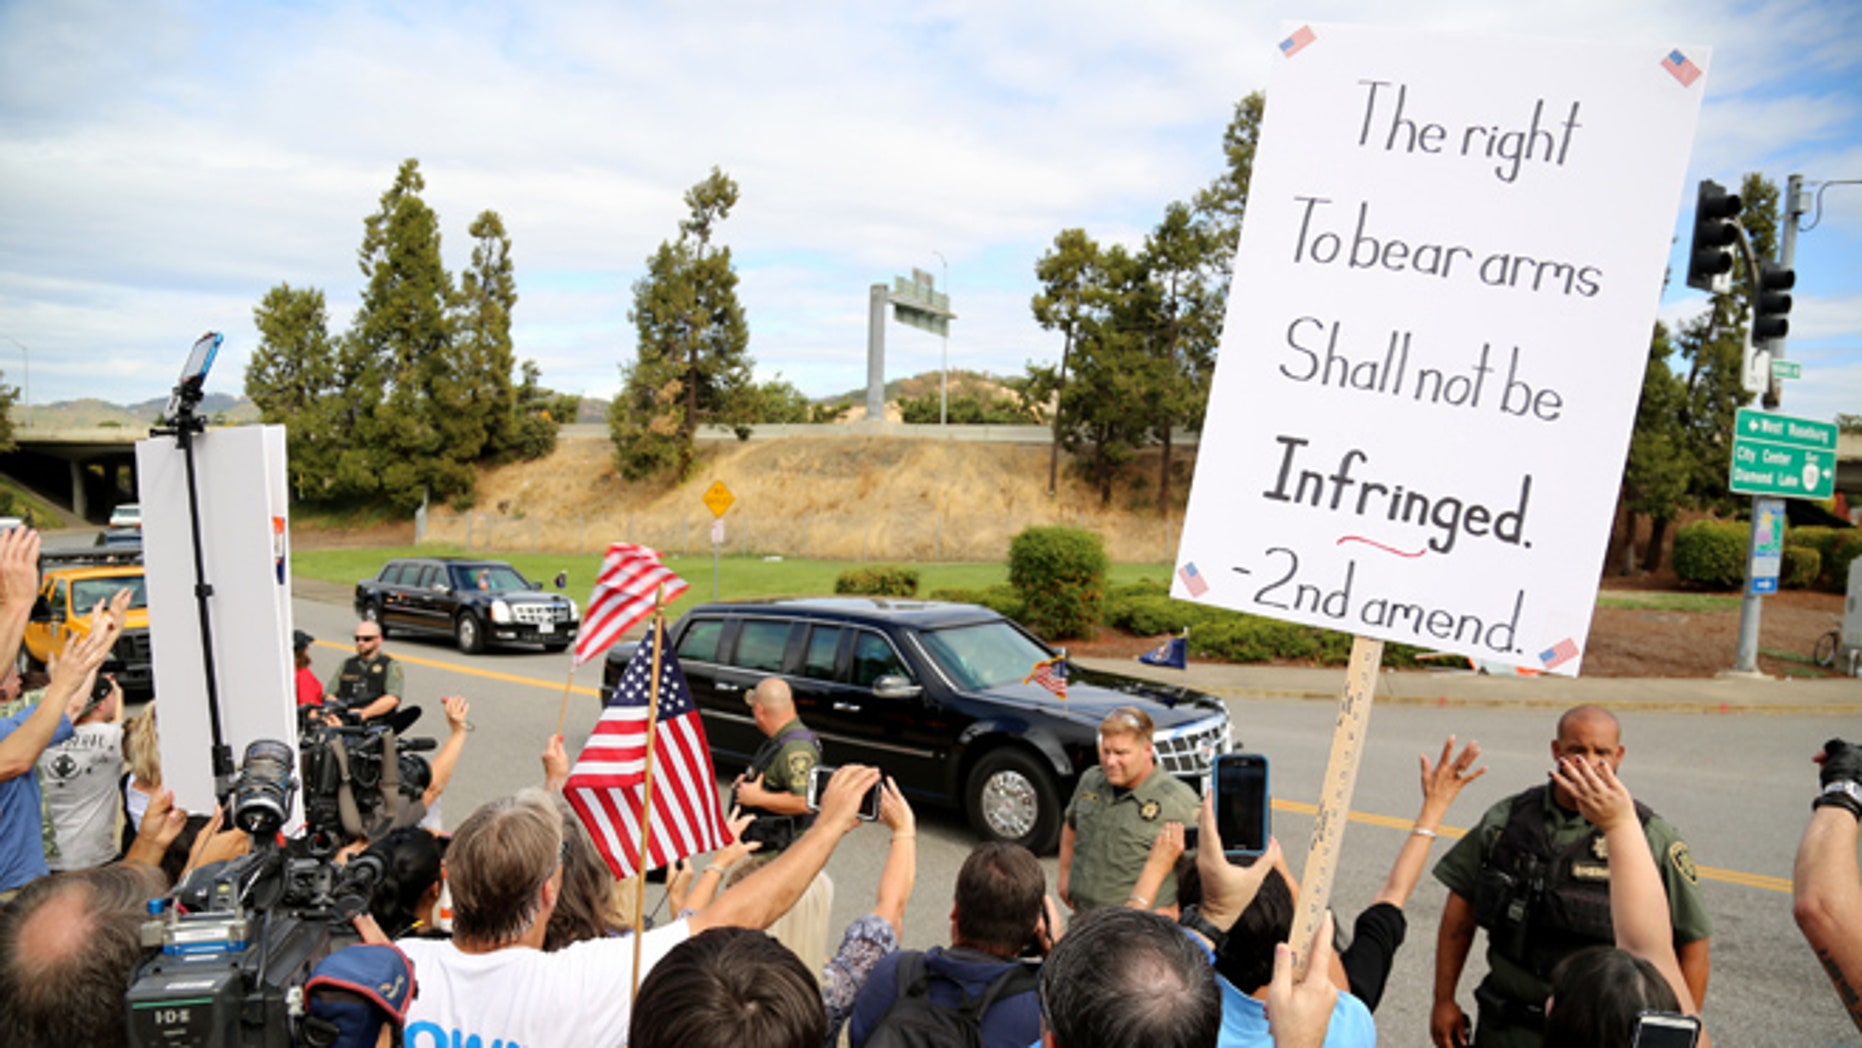 In this Oct. 9, 2015, photo, demonstrators wave flags and signs as President Obama's motorcade drives by in Roseburg, Ore.